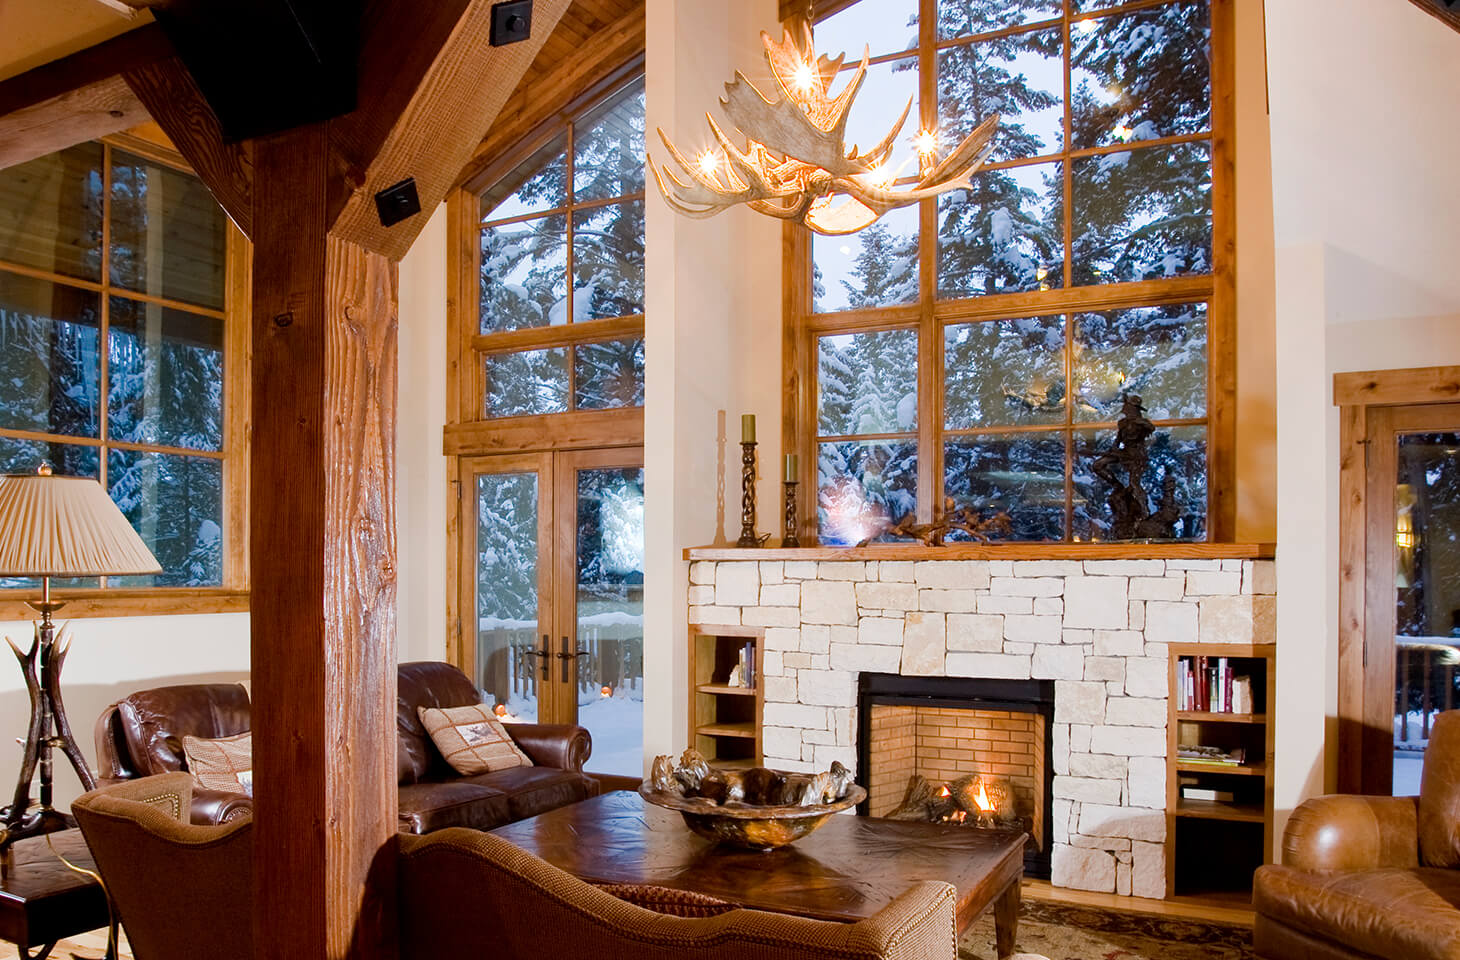 Living room with antler chandelier and open hearth fireplace